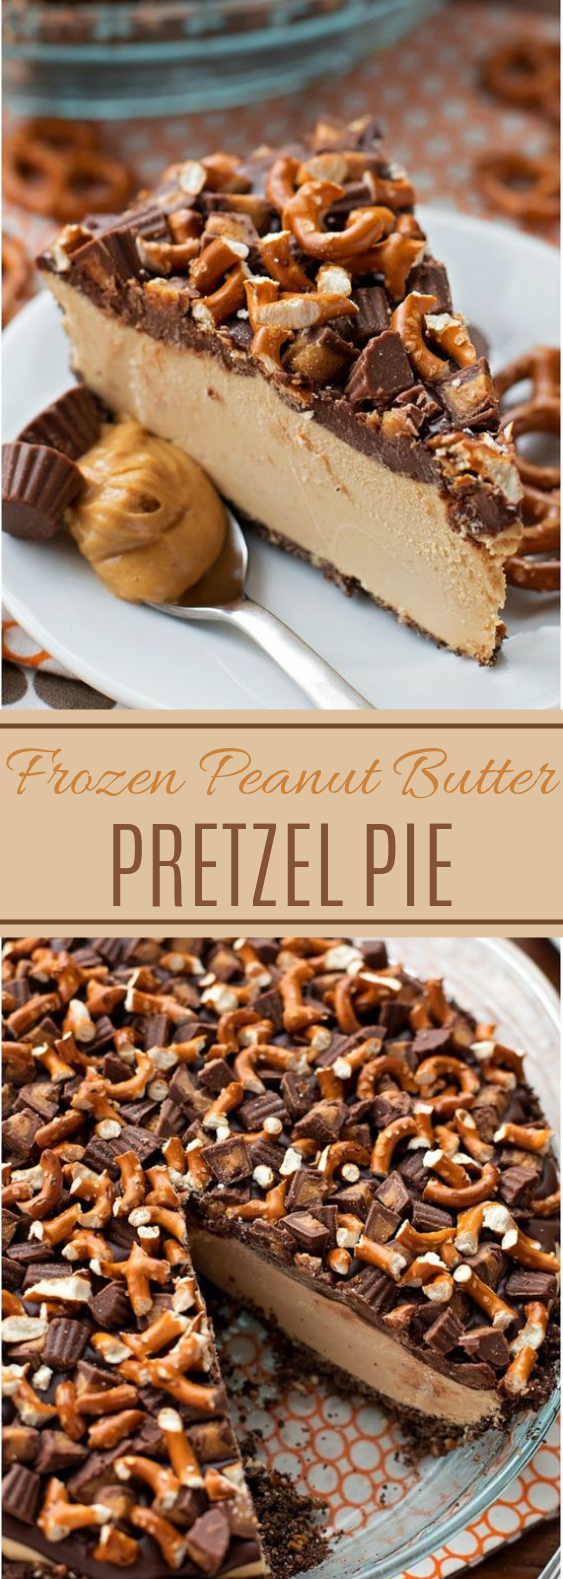 Frozen Peanut Butter Pie #chocolate #desserts